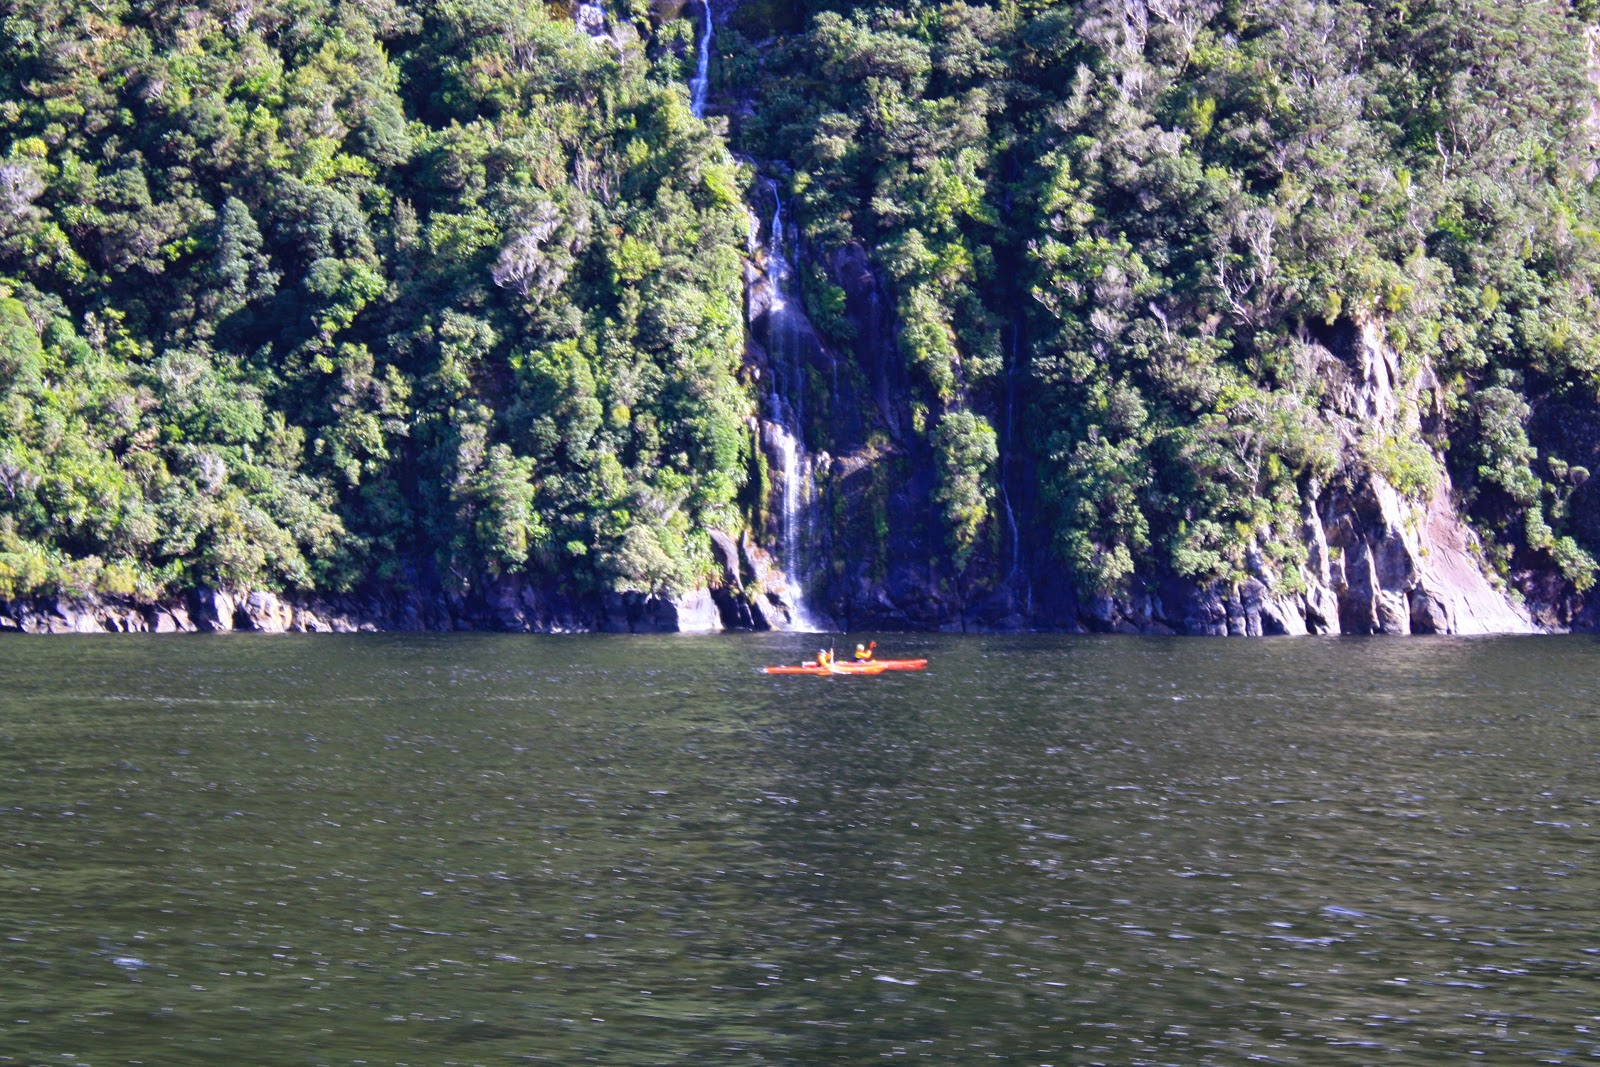 Kayakers in Milford Sound.